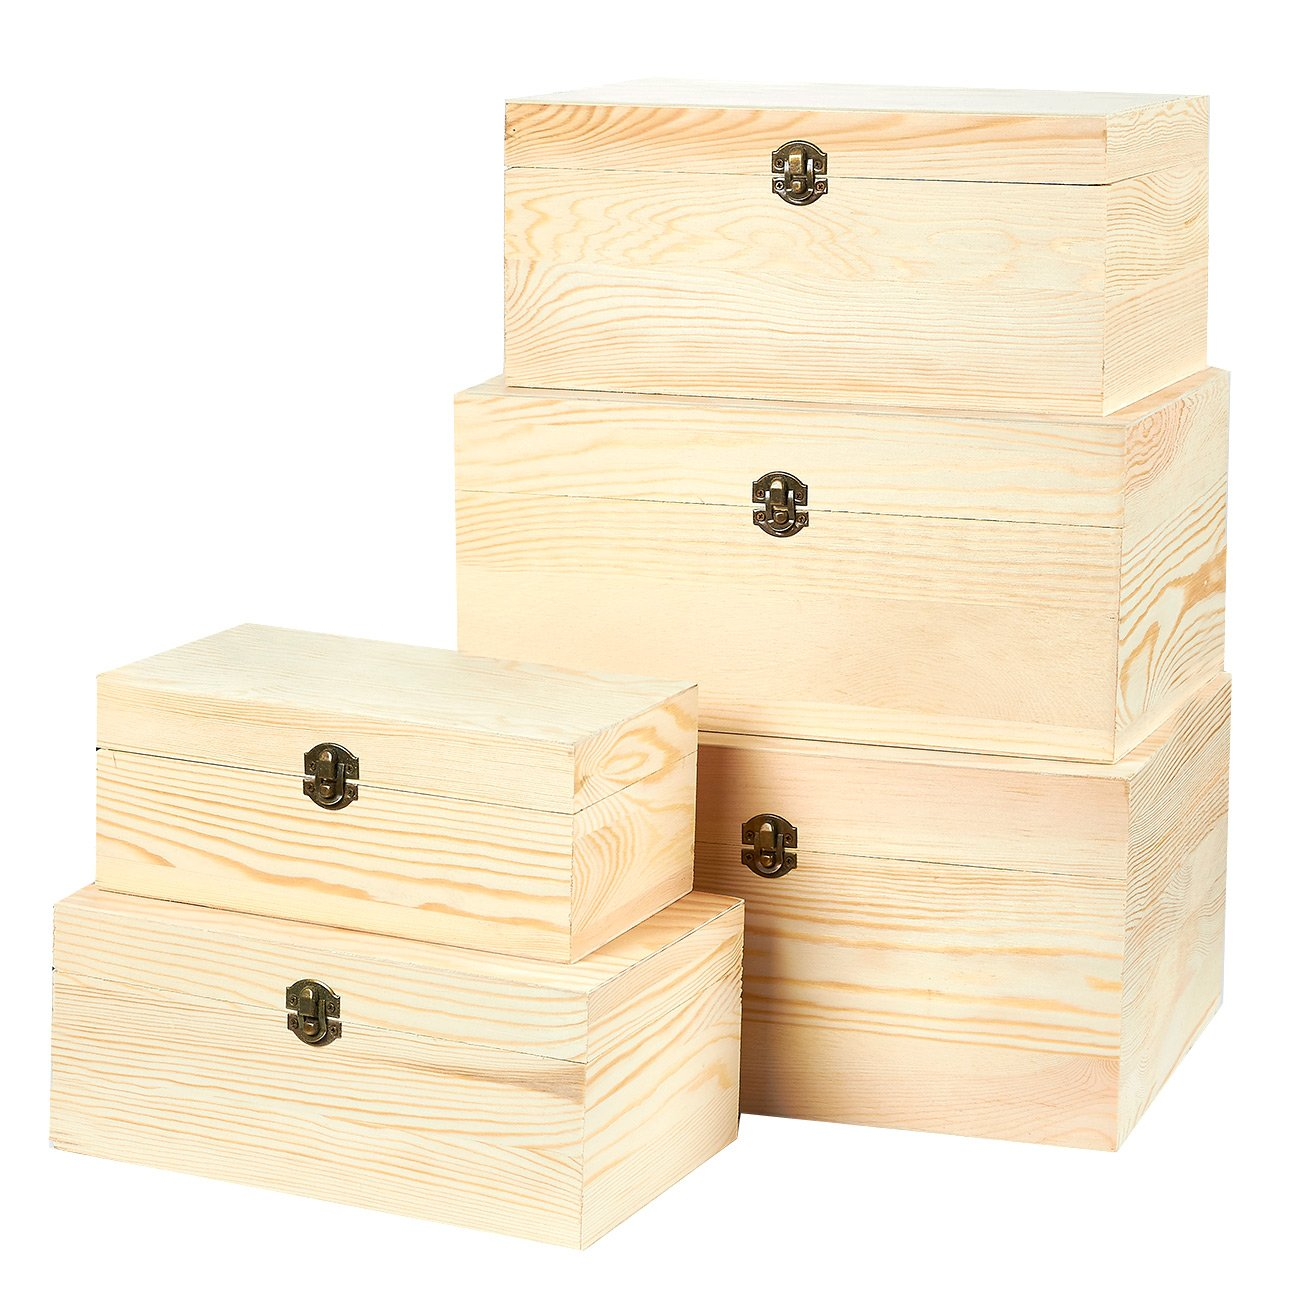 Juvale Wooden Boxes - 5-Piece Hinged-Lid Boxes Arts, Crafts, Hobbies Home Storage, Natural Wood Color